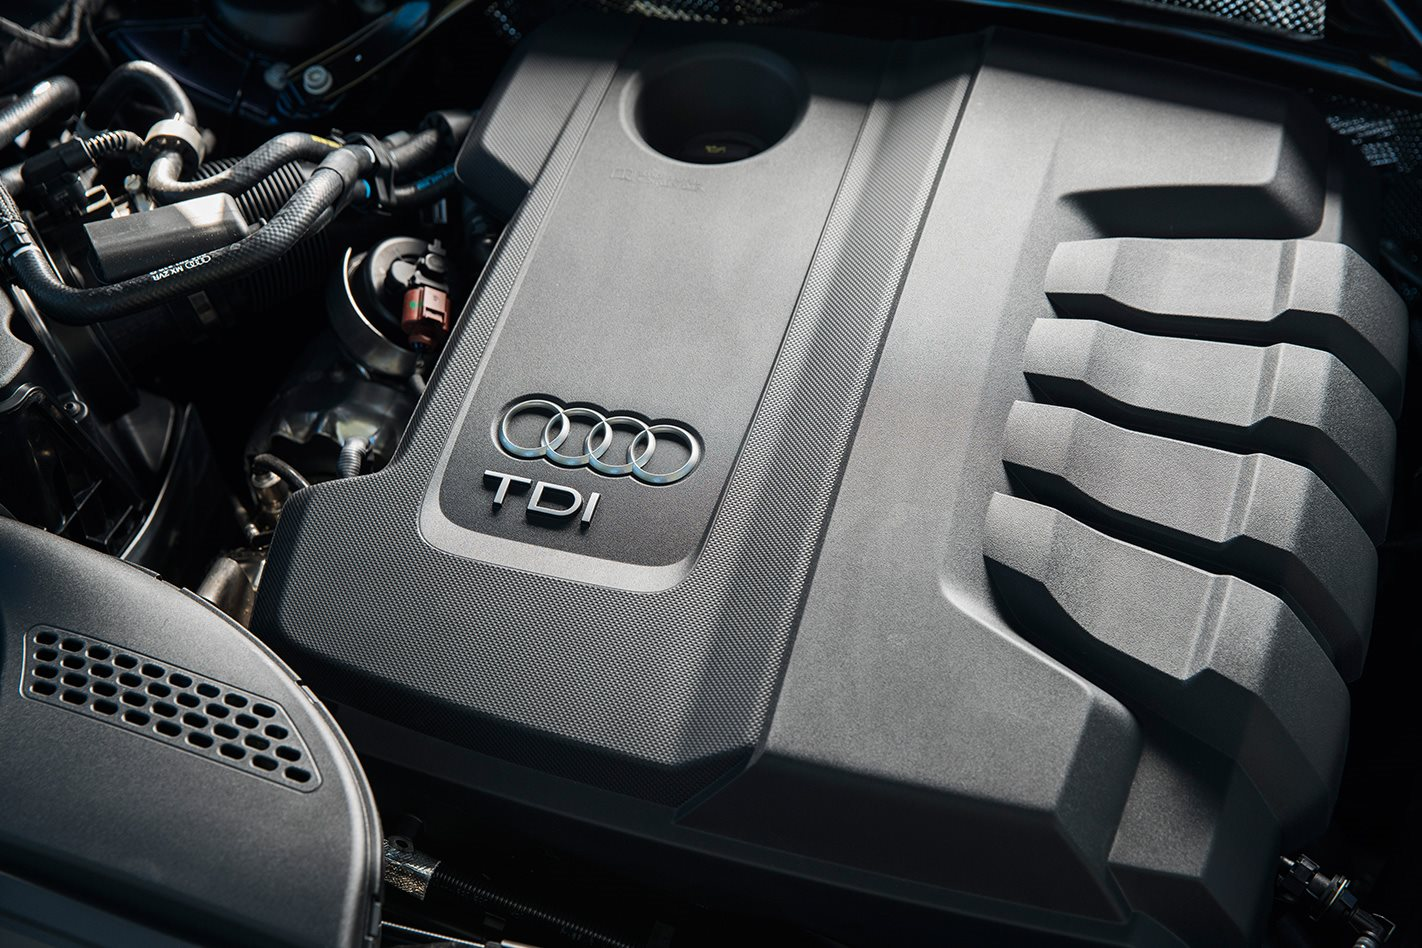 Audi Q5 TDI ENGINE